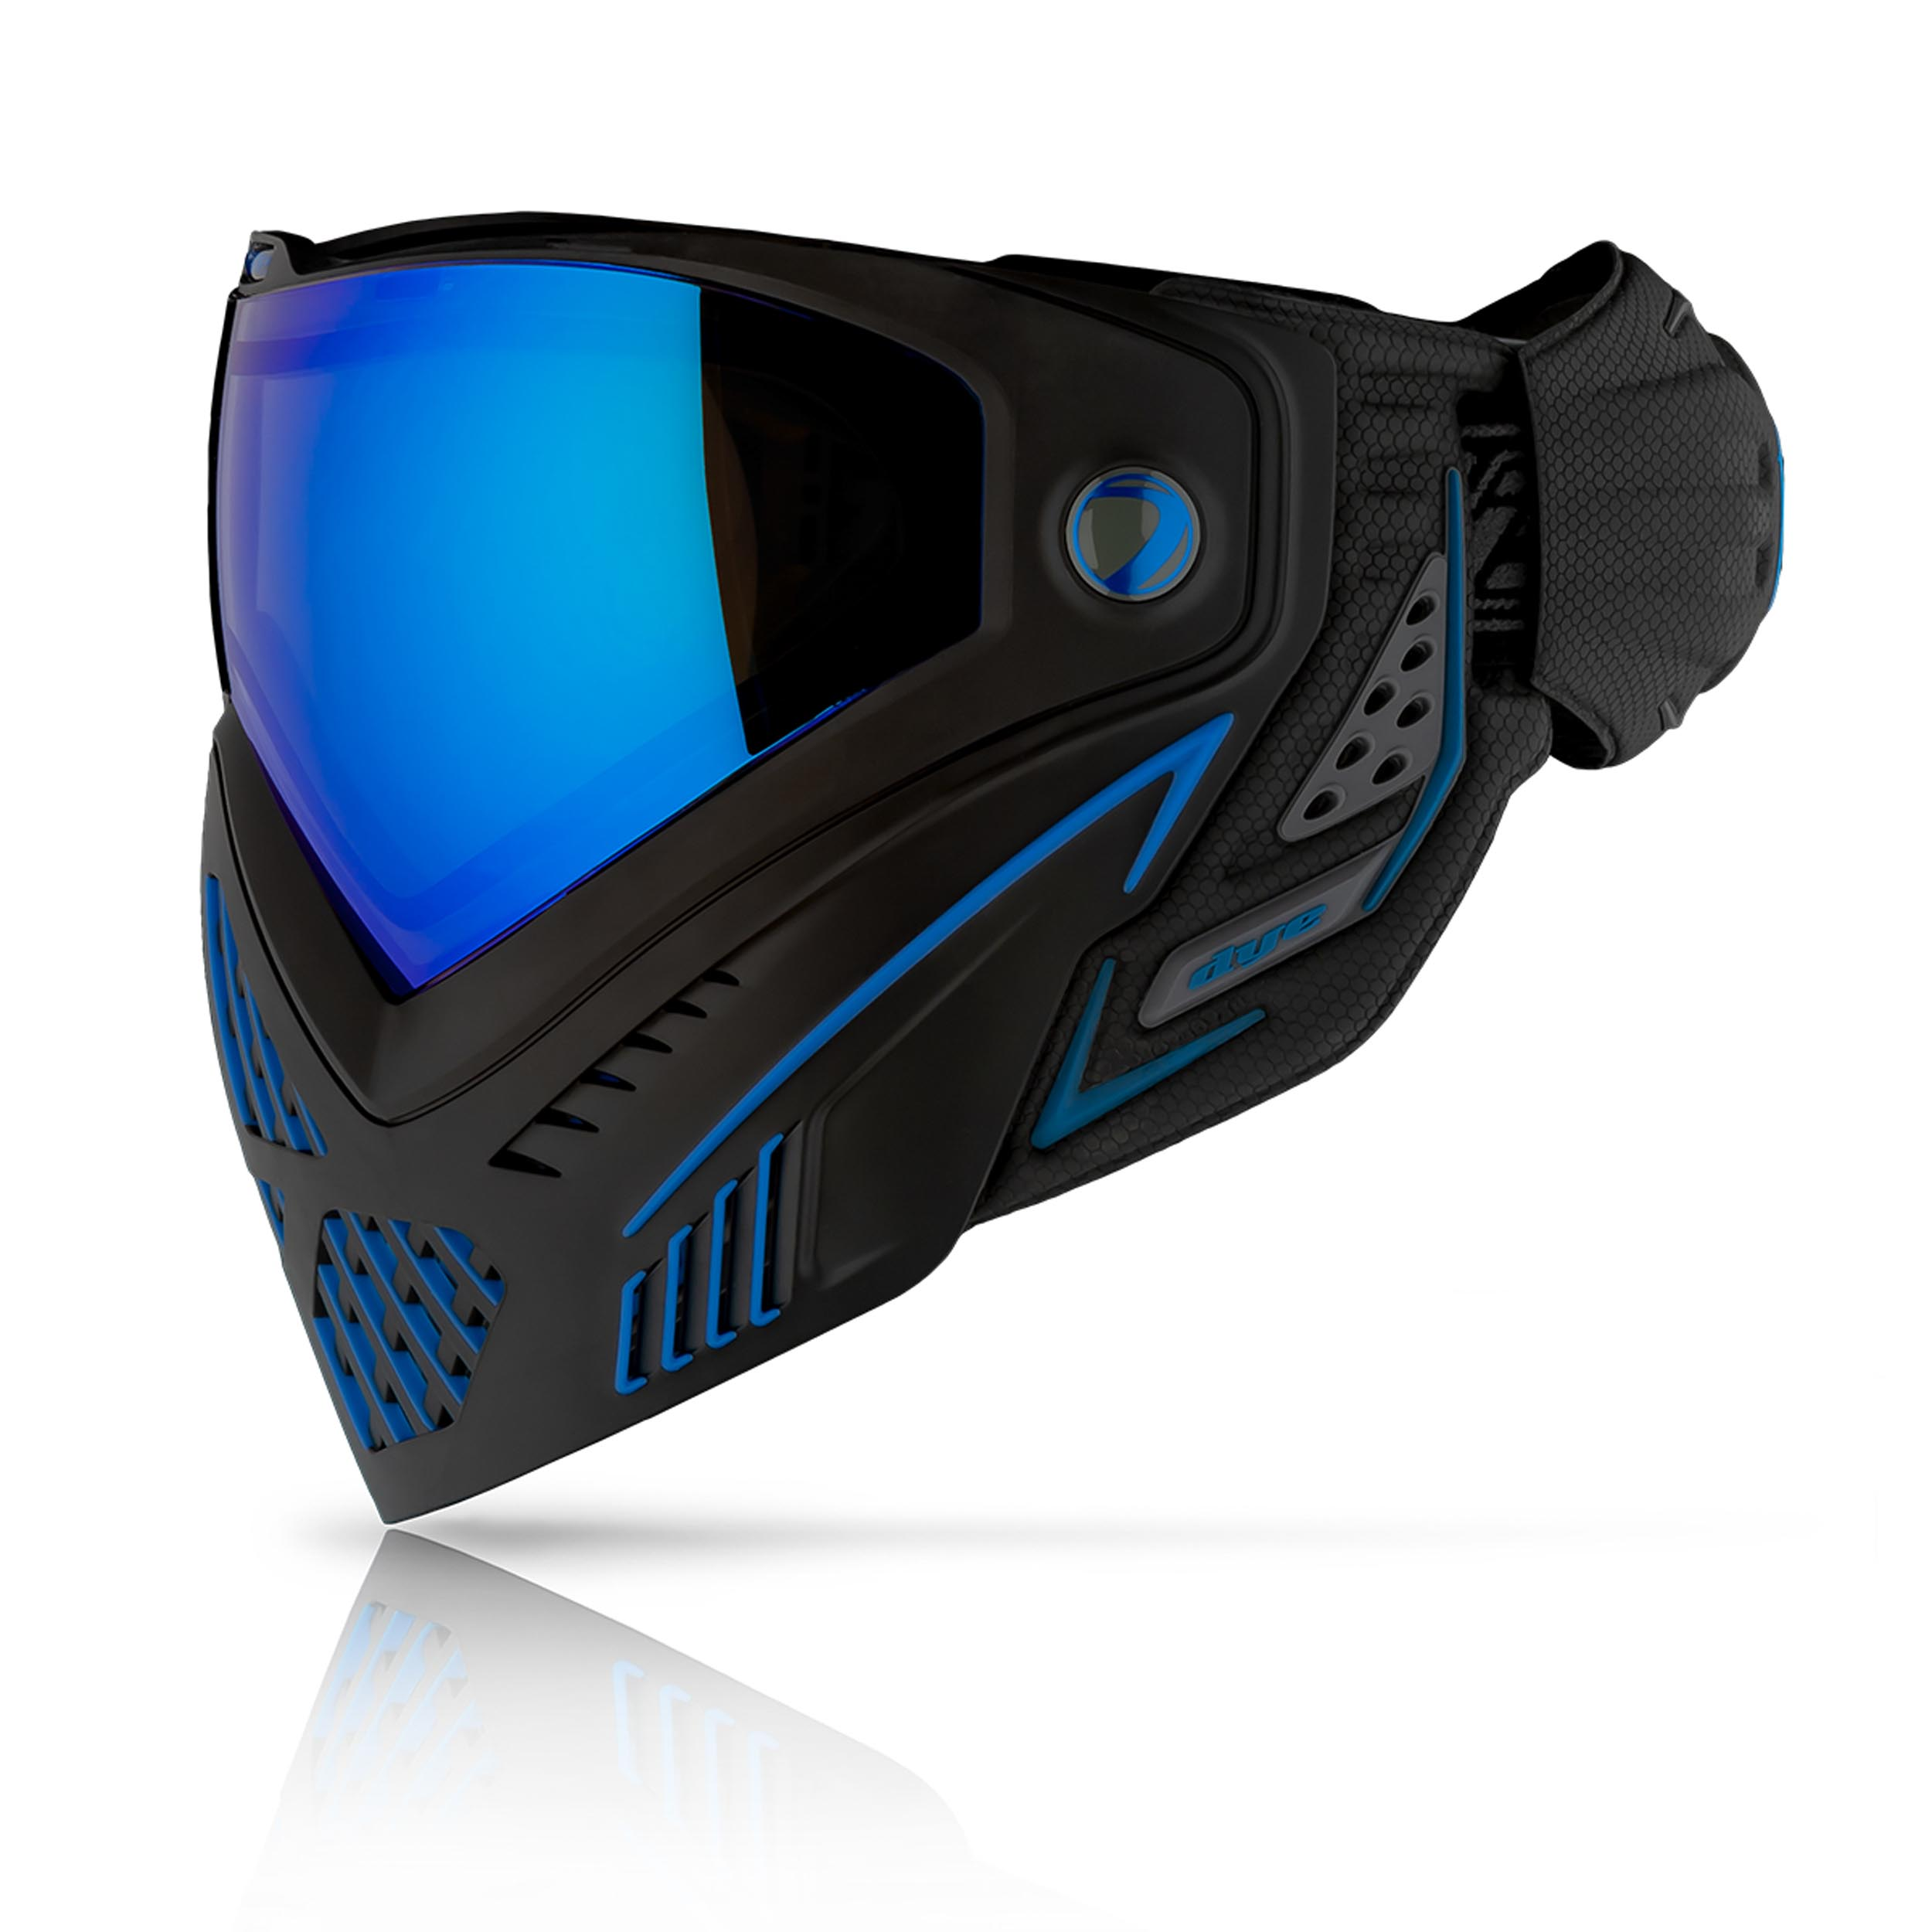 MAS473-1 Dye I5 thermal goggle Onyx Black Gold 2.0 - MAS473